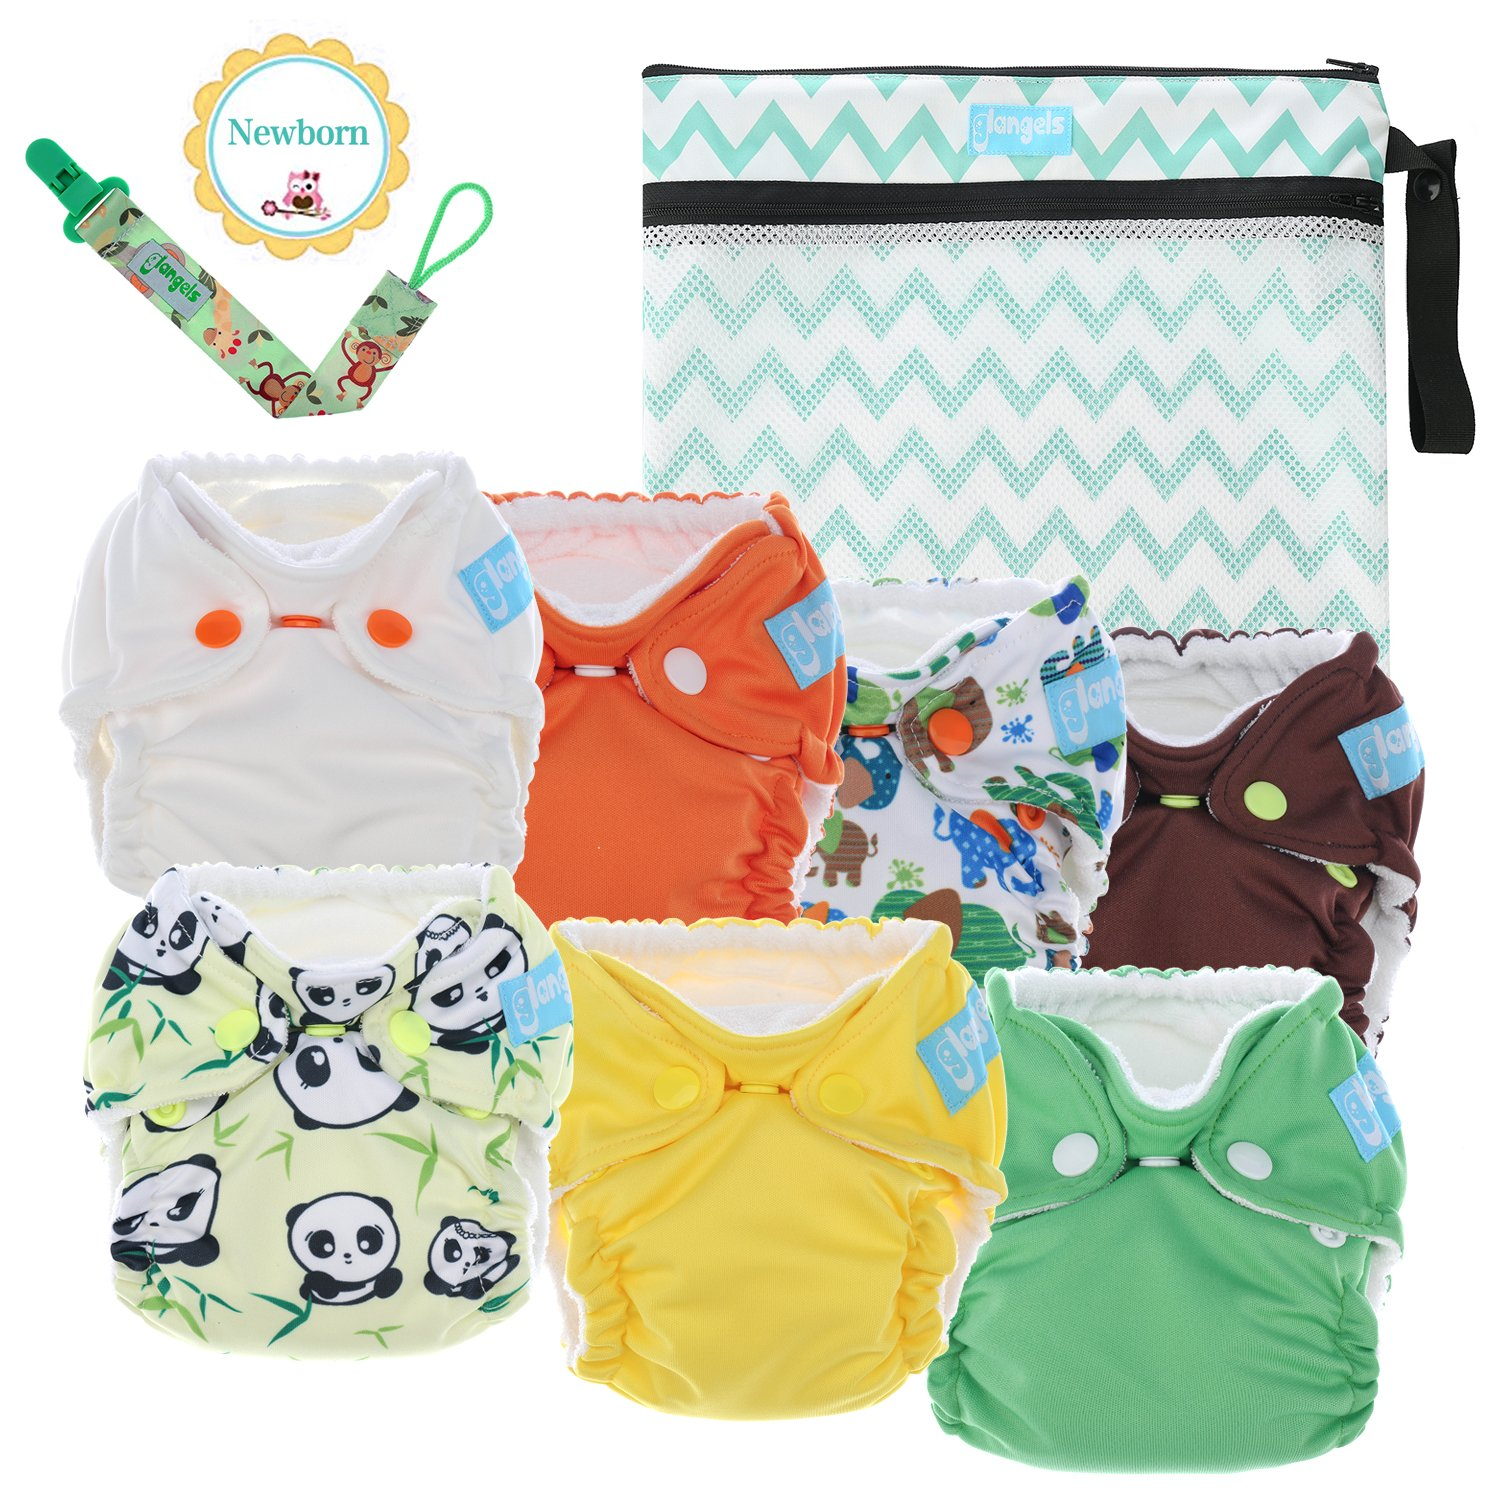 Premium Organic Reusable Cloth Diapers –Set of 7 –for Full Term & Preemie Babies –Breathable W/Waterproof Cover –Bonus Wet & Dry Reusable Diaper Bag & Pacifier Clip –Perfect Baby Shower Gift(7 Mixed)